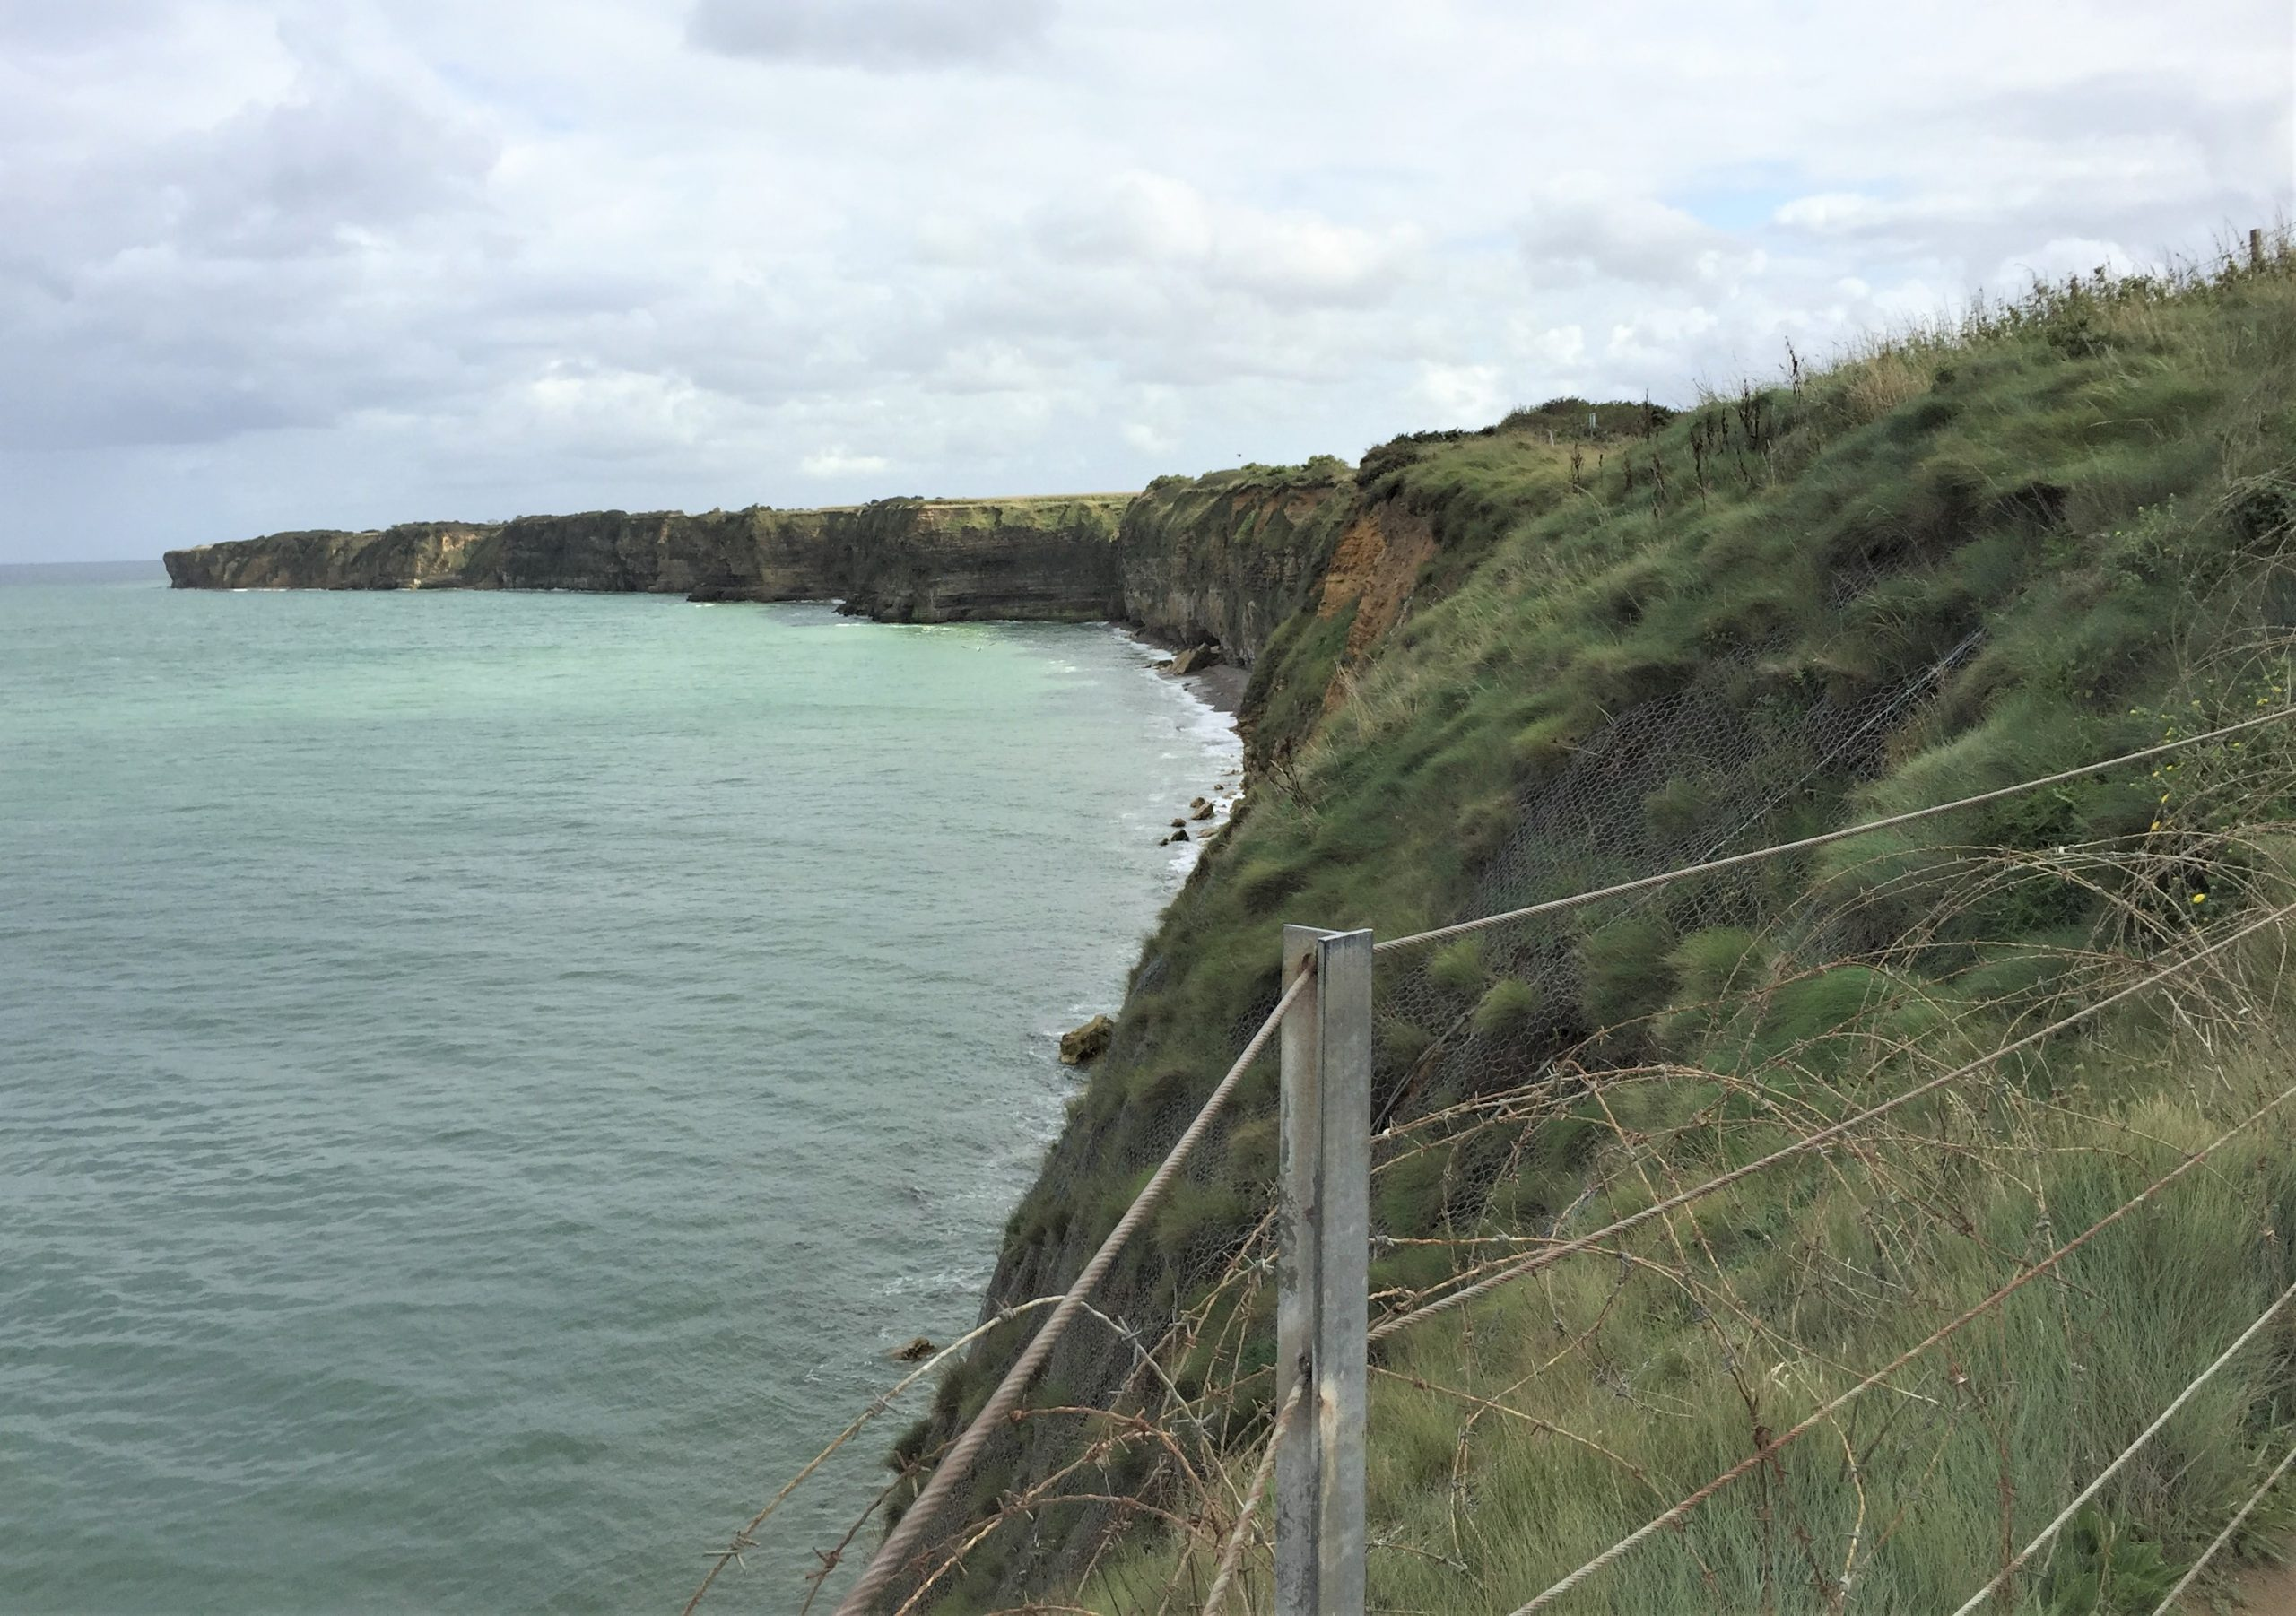 Cliffs of Pointe du Hoc (Photo: Sarah Sundin, September 2017)